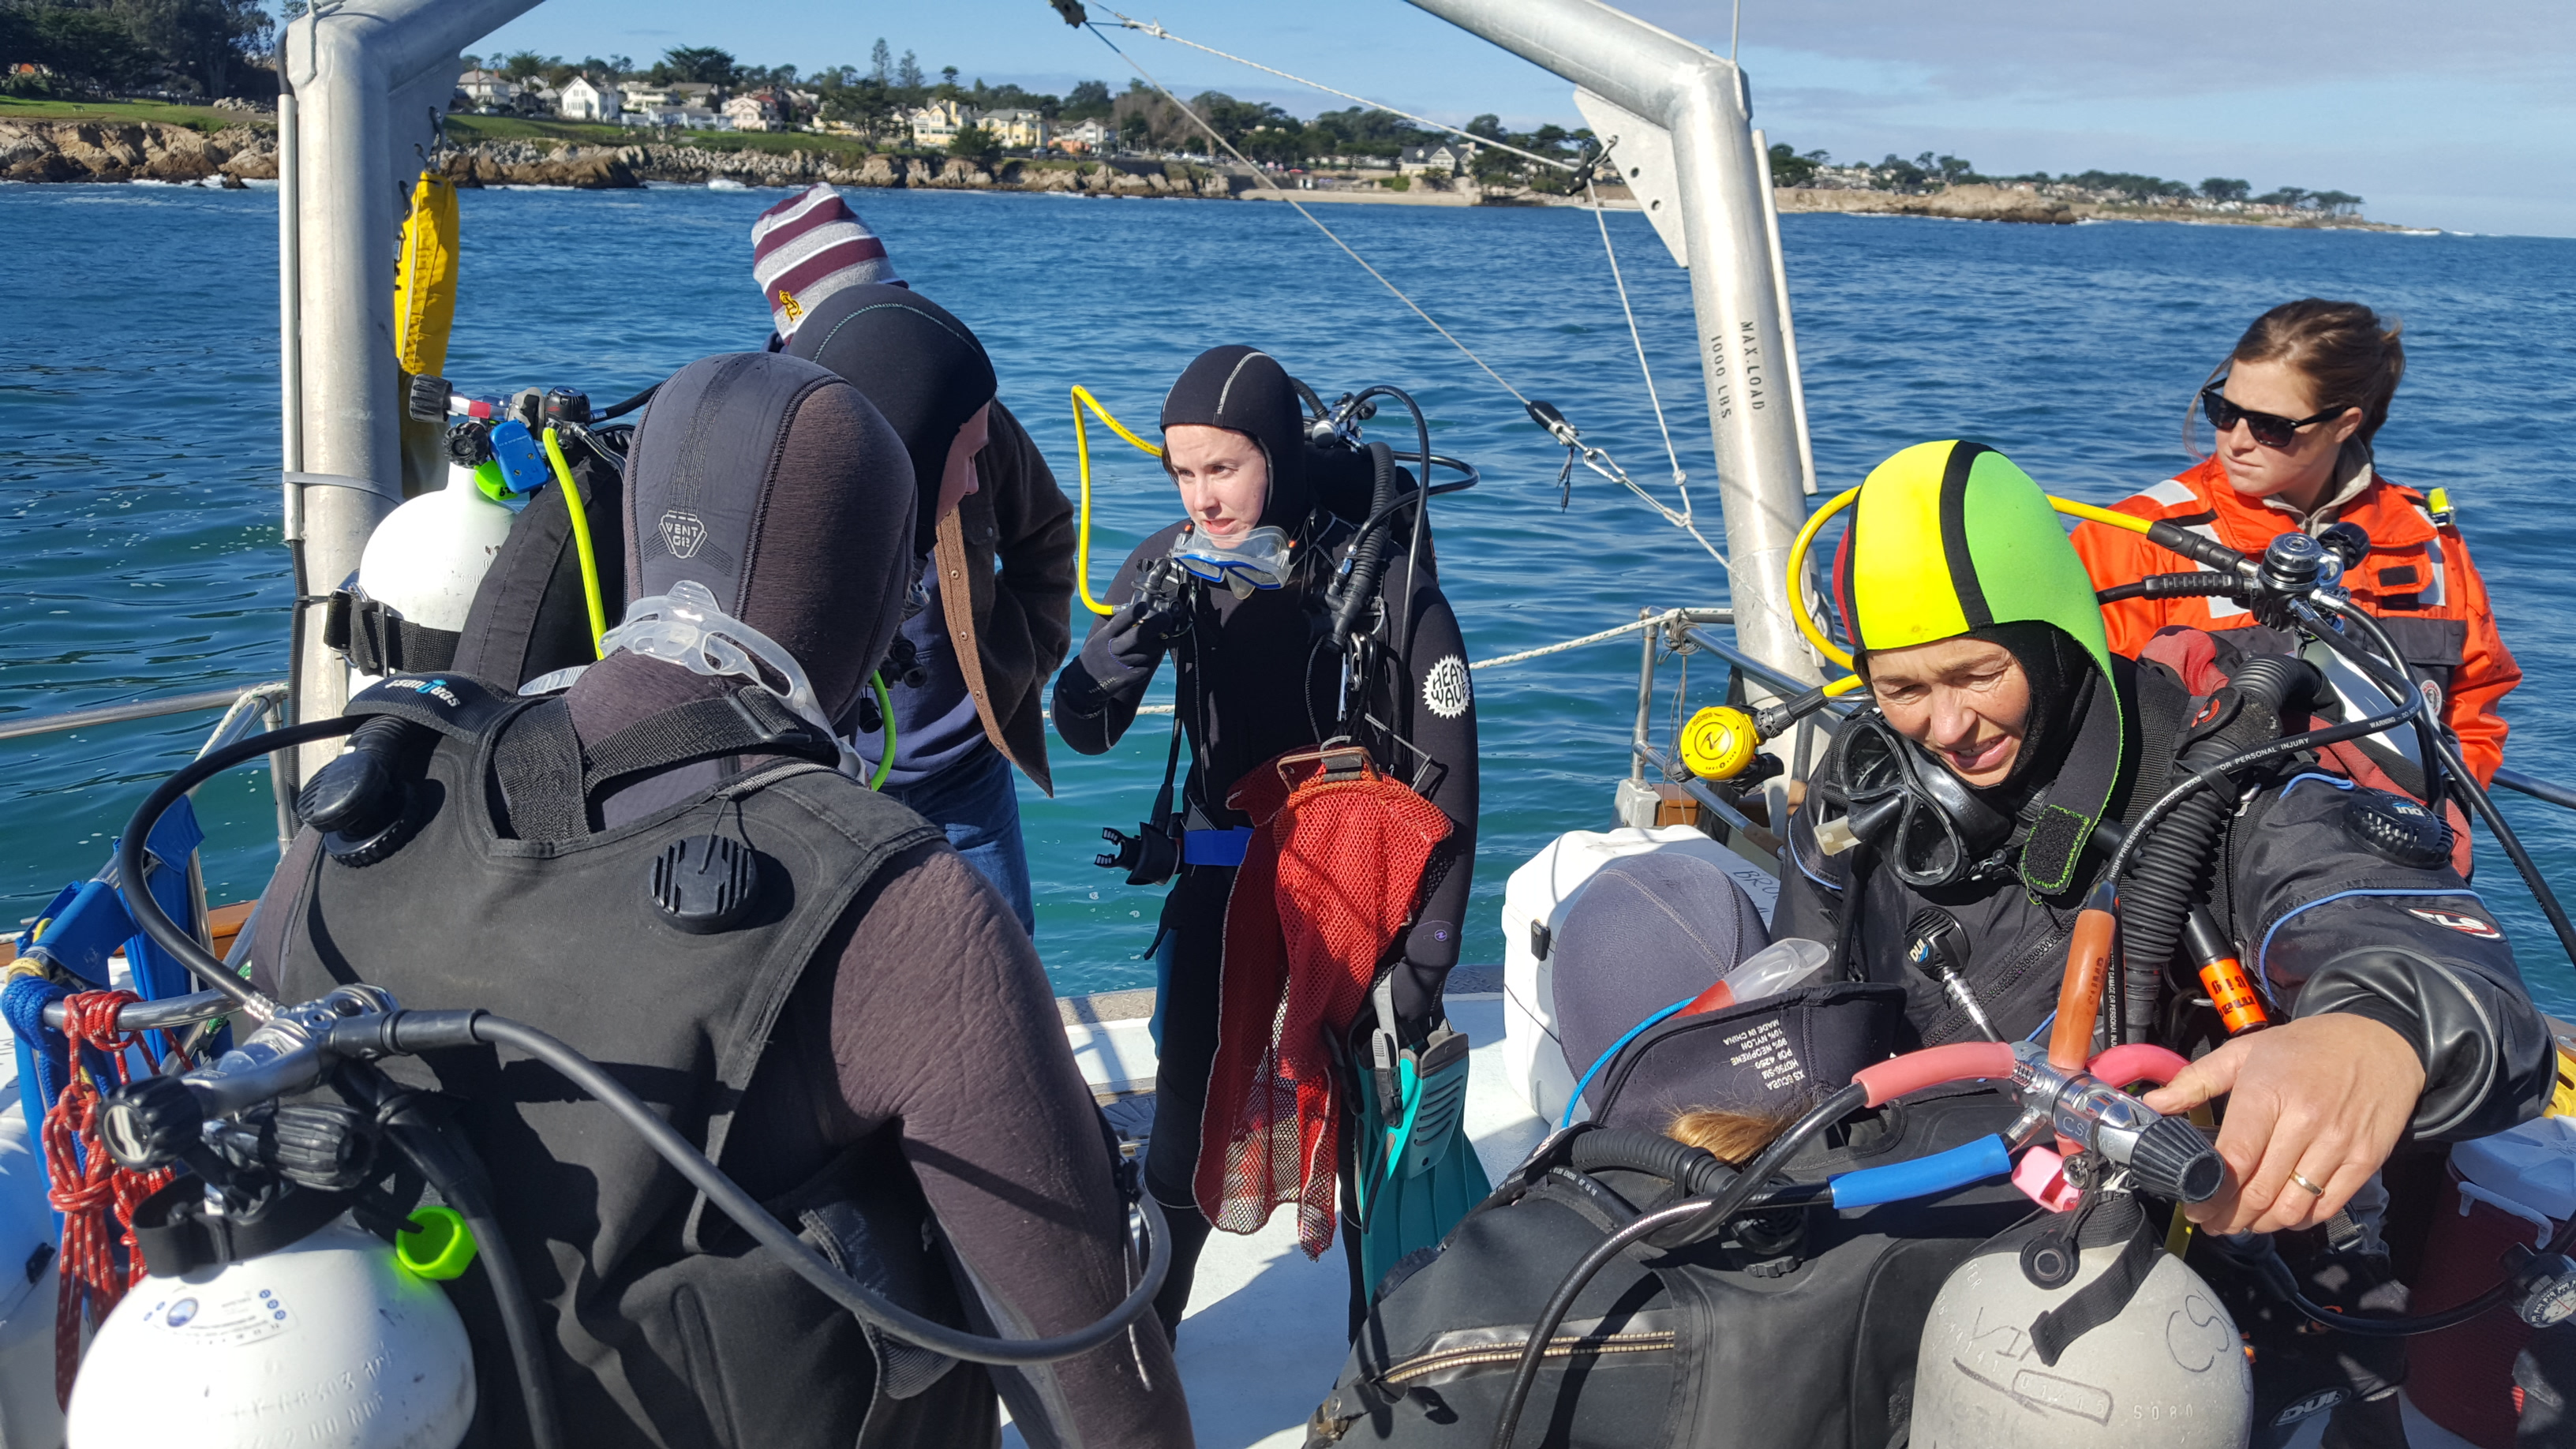 students on a boat preparing to scuba dive to collect urchins from an urchin barren